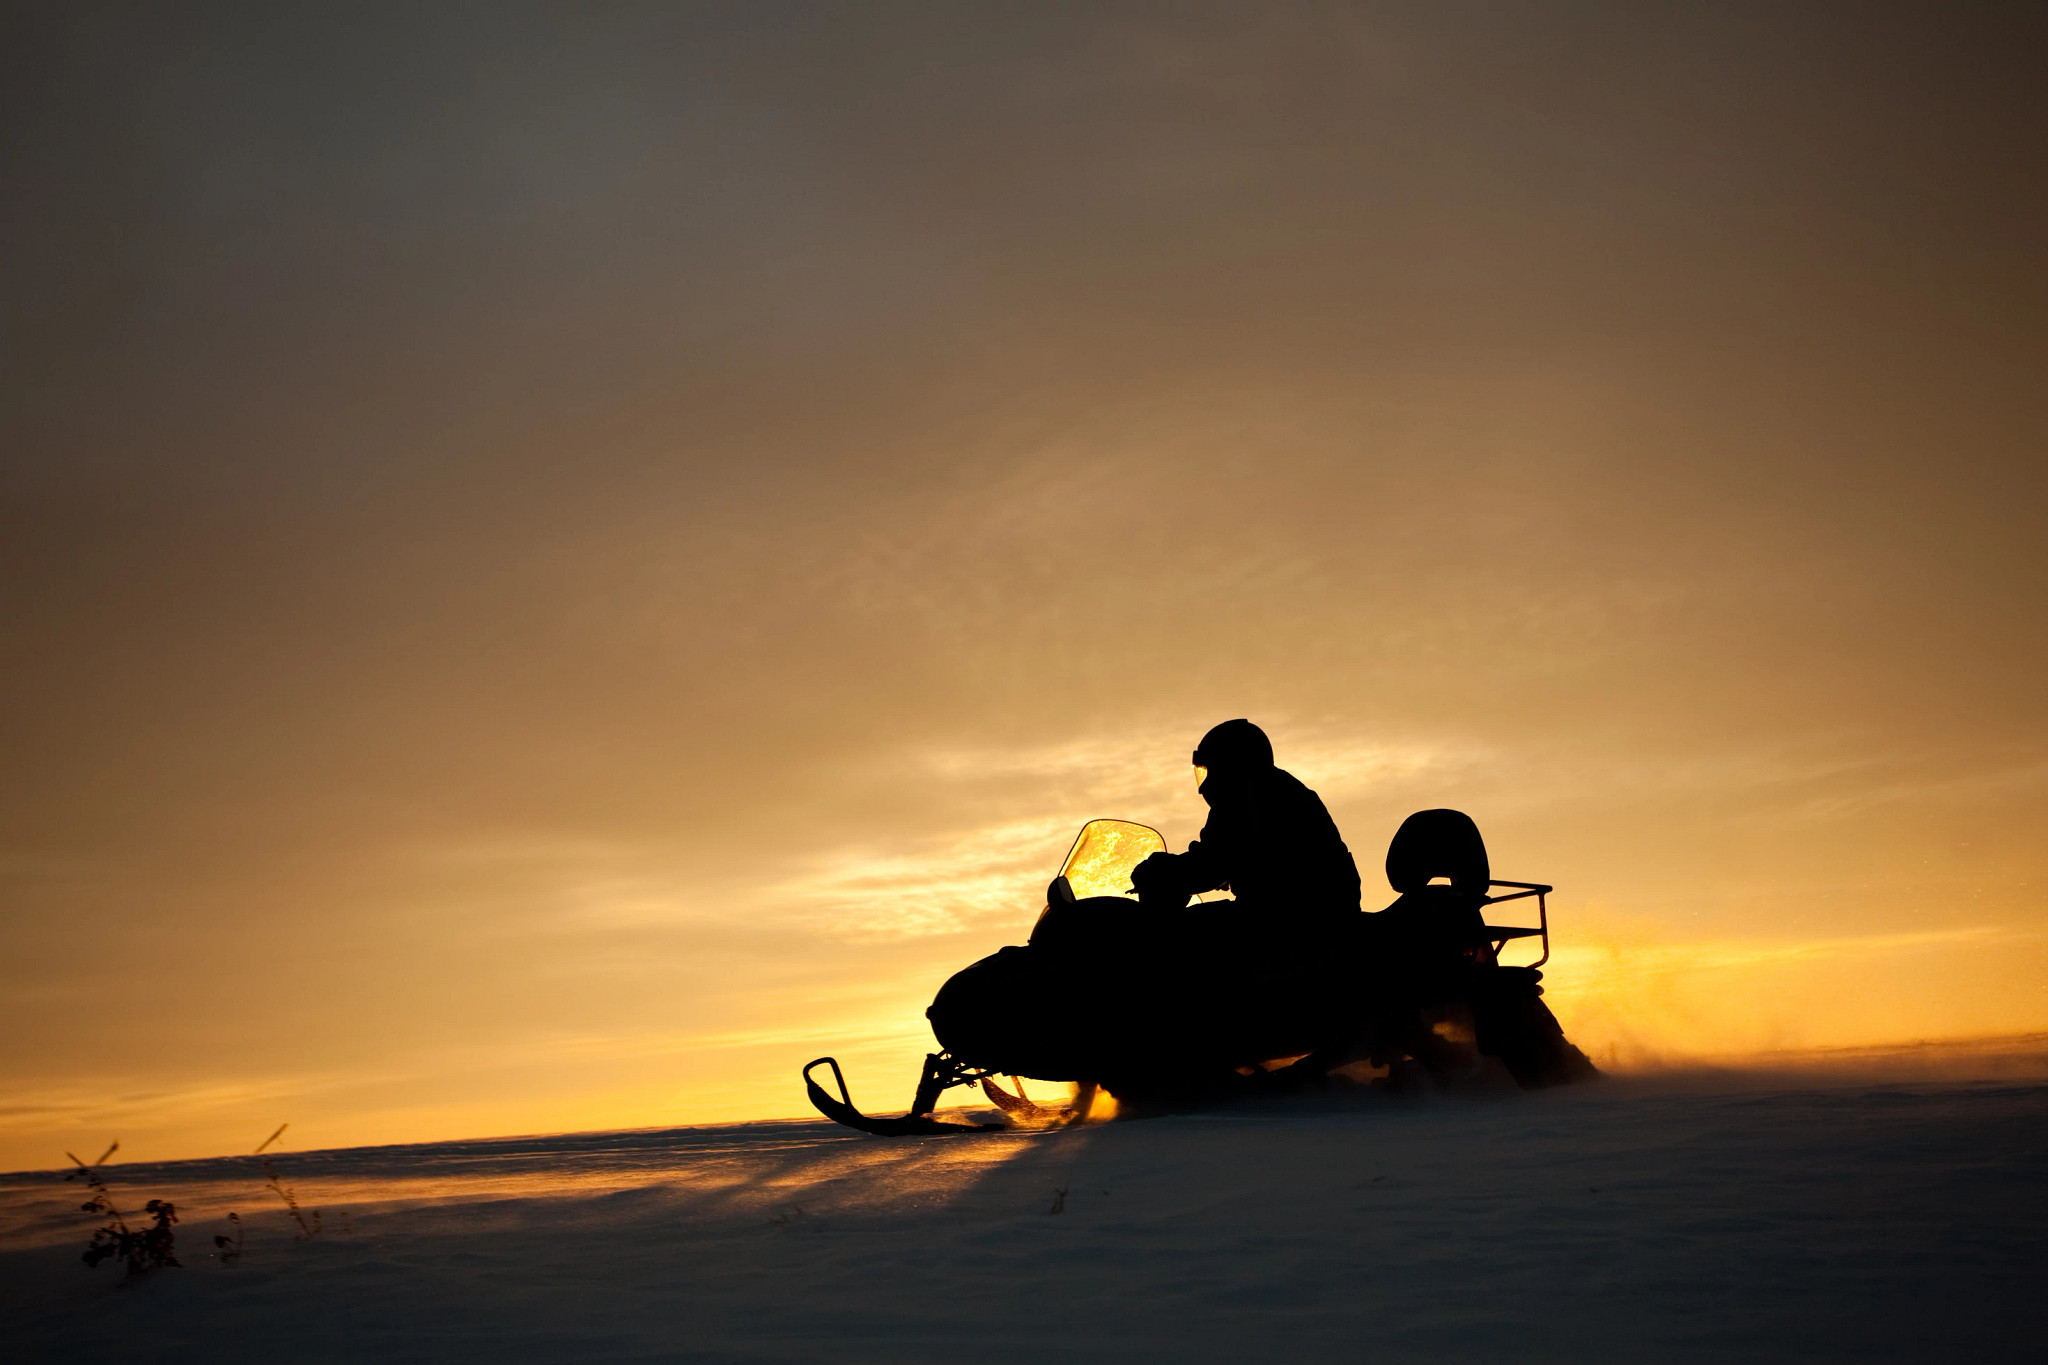 A silhouette of a snowmobiler in action.